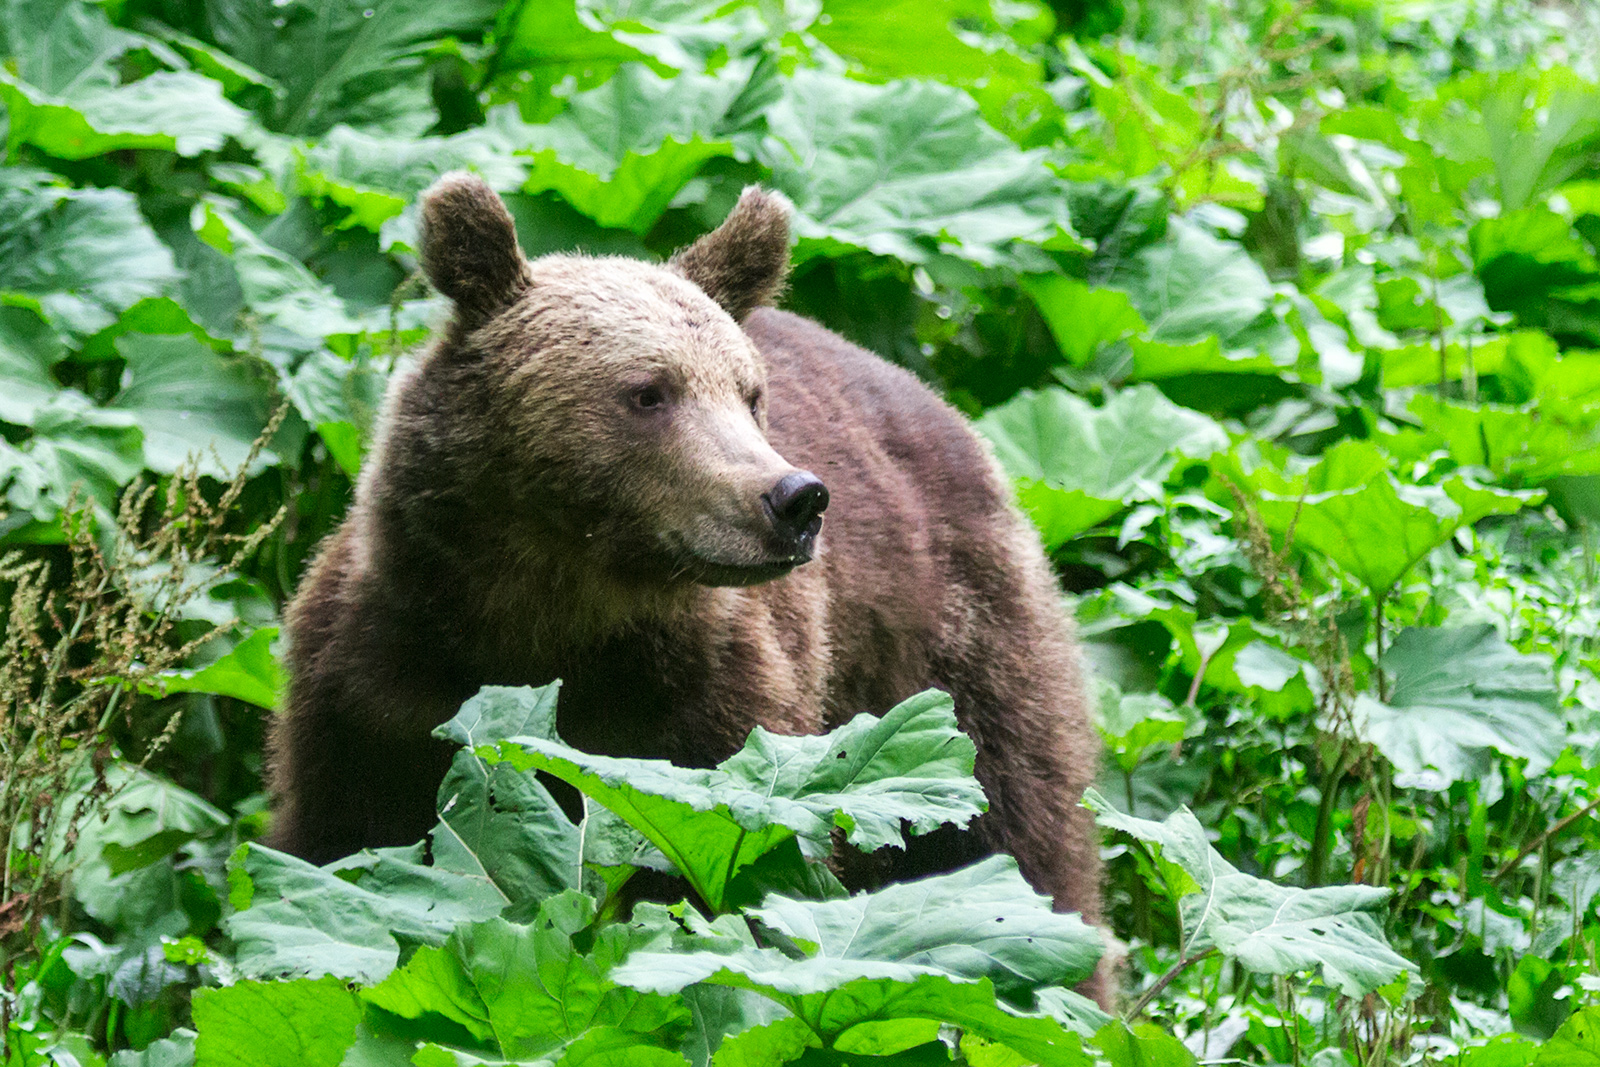 The bears came less than 20 meters to the hide